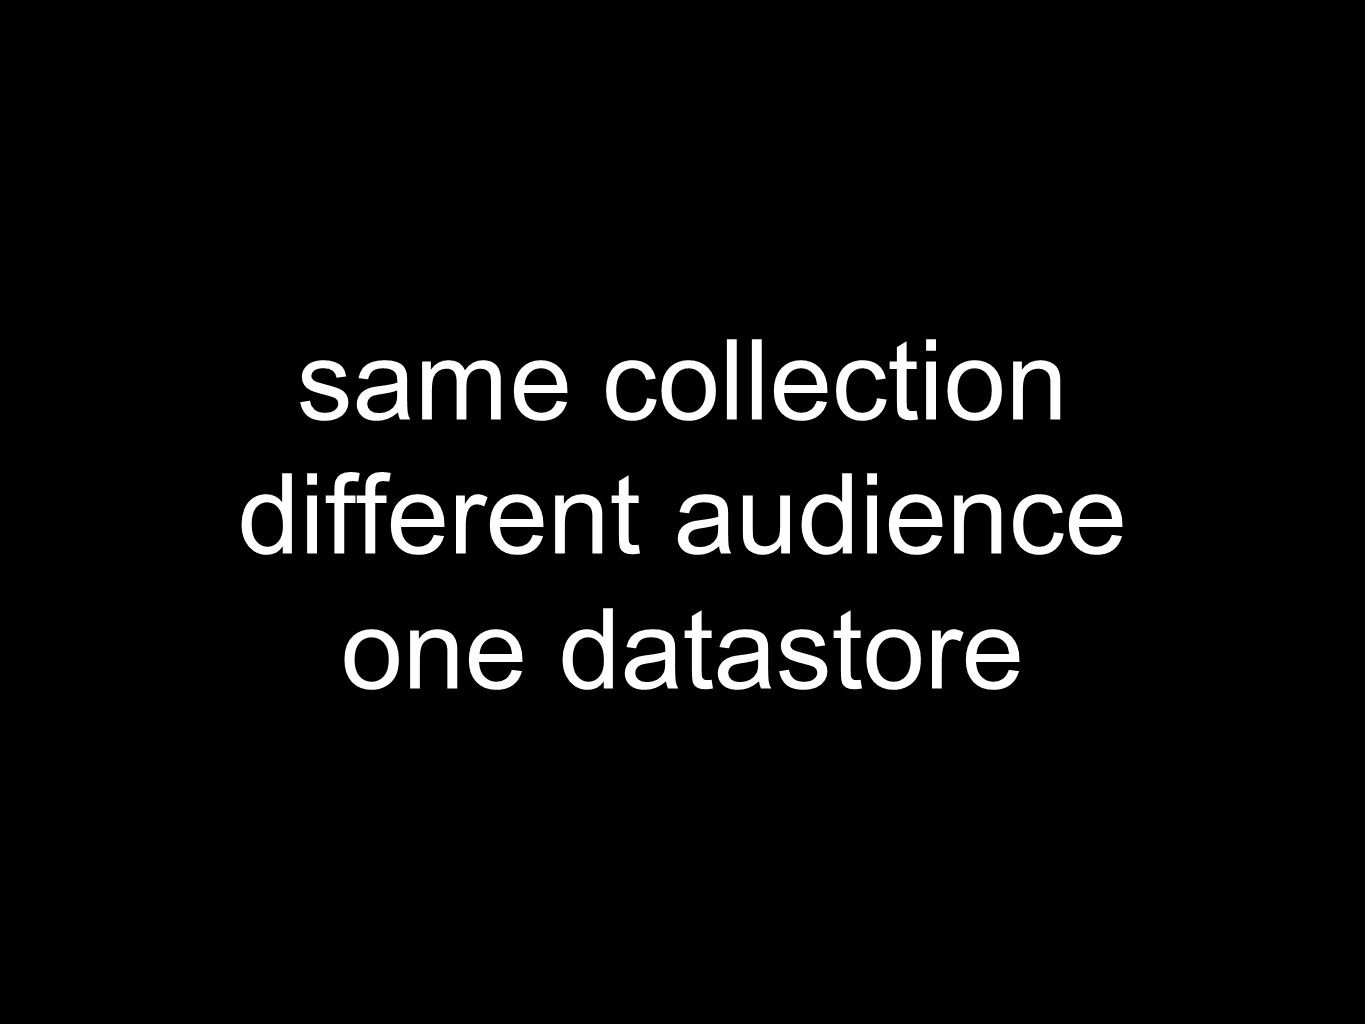 same collection different audience one datastore